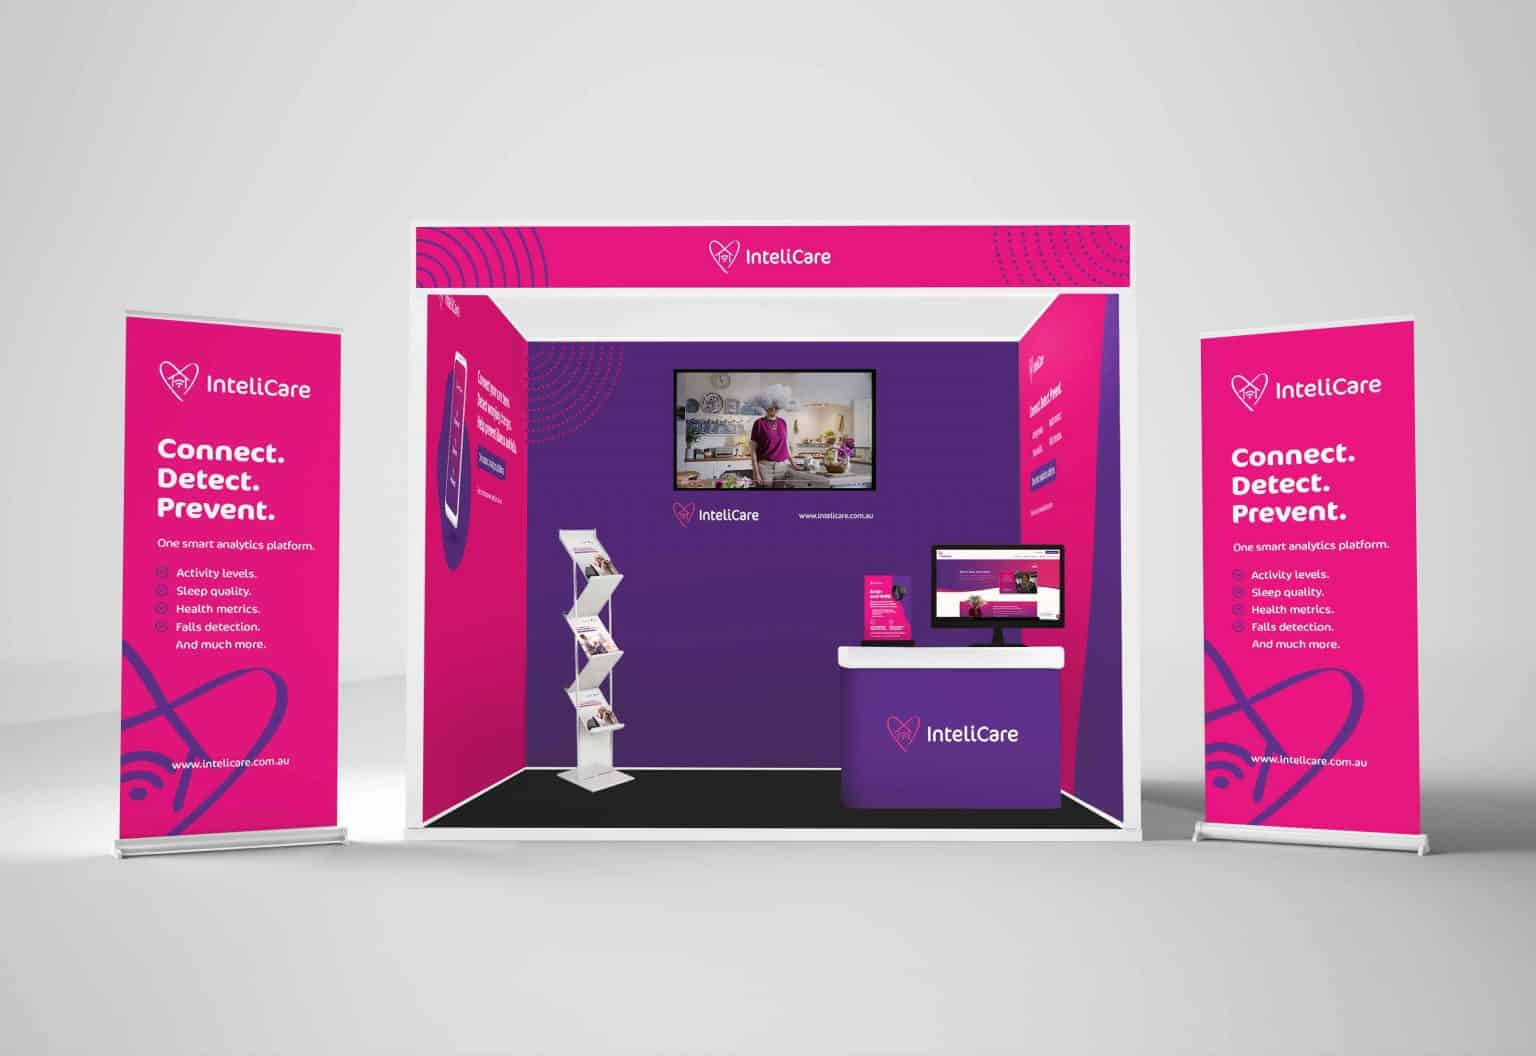 exhibition booth design mockup of tech startup brand